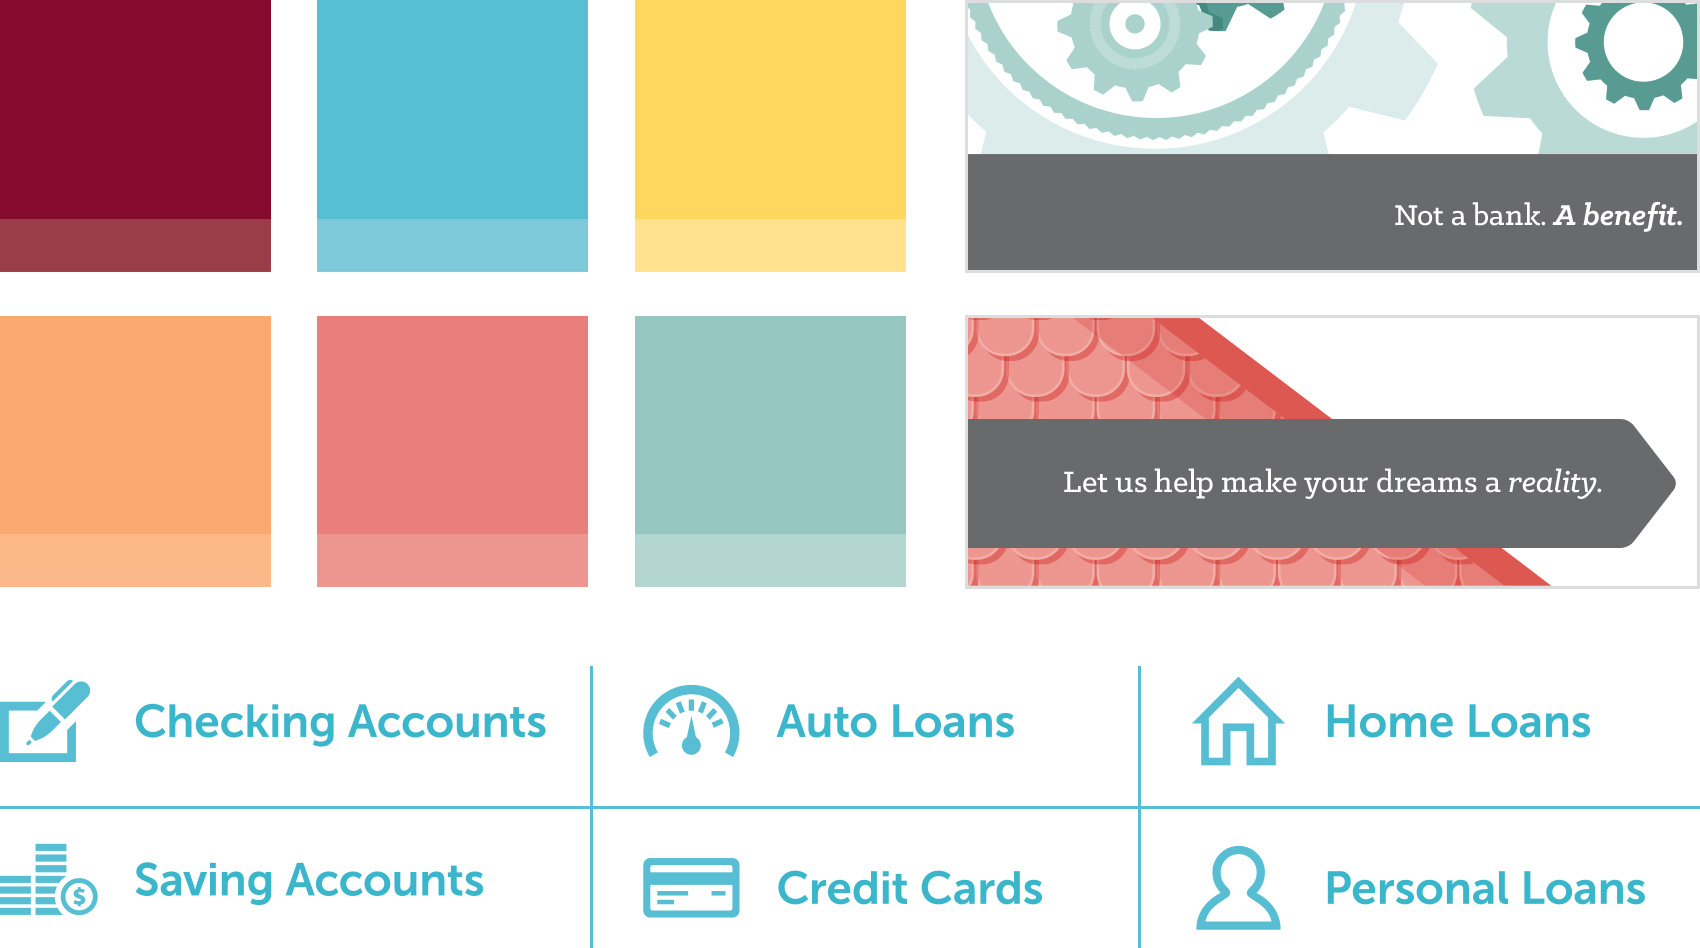 Harvard University Employee's Credit Union branding details